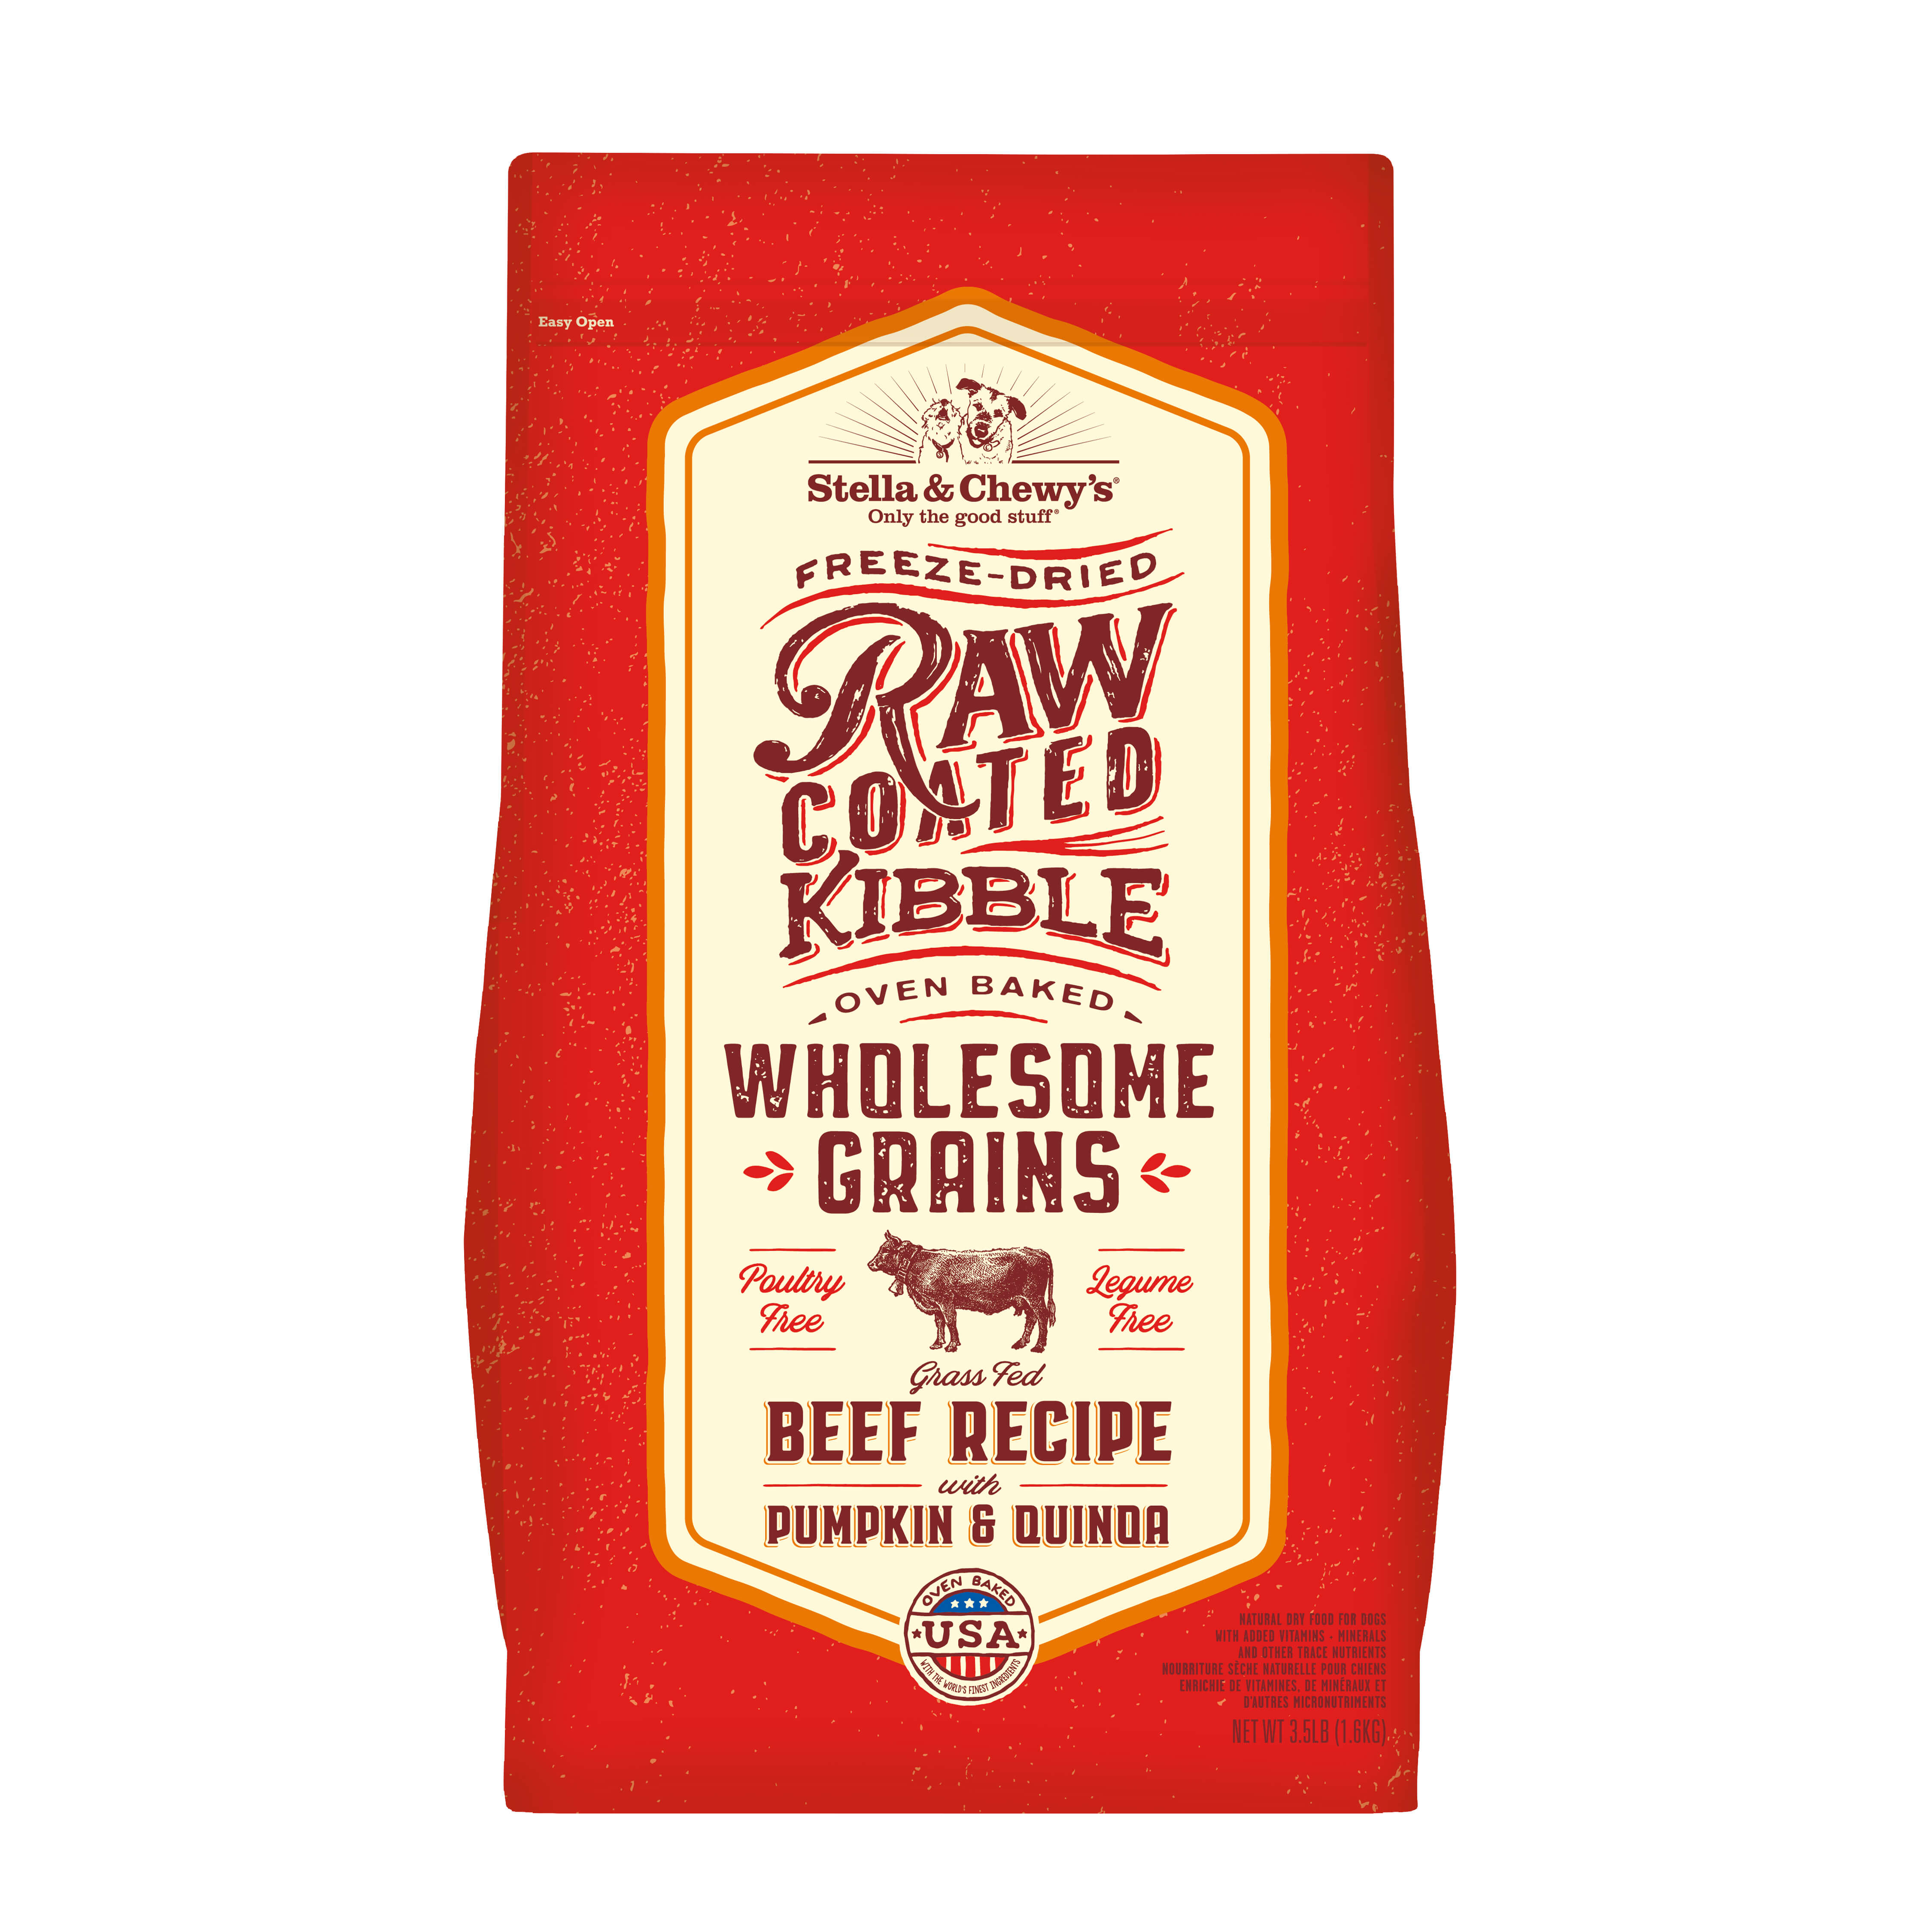 Stella & Chewy's Raw Coated Baked Kibble with Wholesome Grains Beef Recipe with Pumpkin & Quinoa Dry Dog Food, 3.5-lb